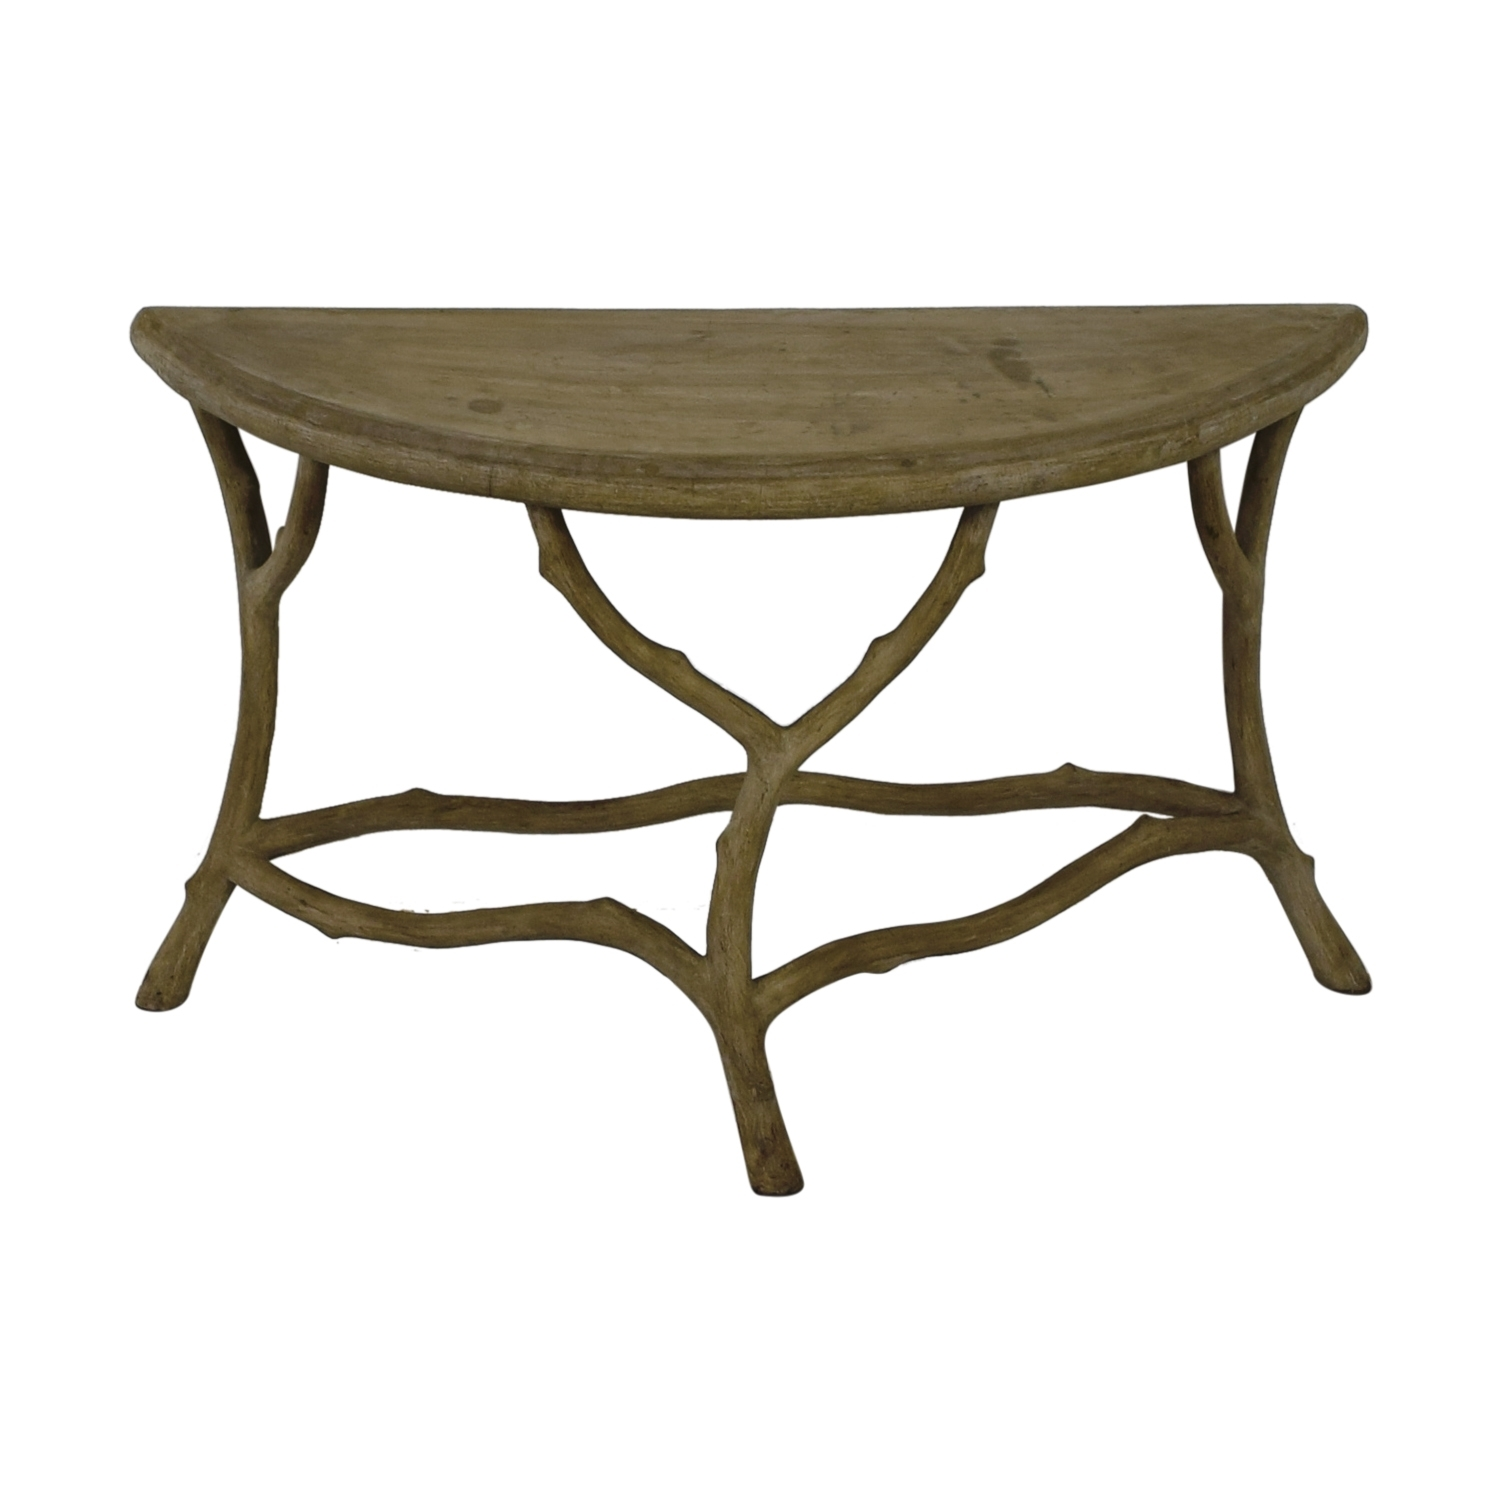 90% Off - Horchow Horchow Grey Faux Bois Half Table / Tables regarding Faux Bois Coffee Tables (Image 3 of 30)